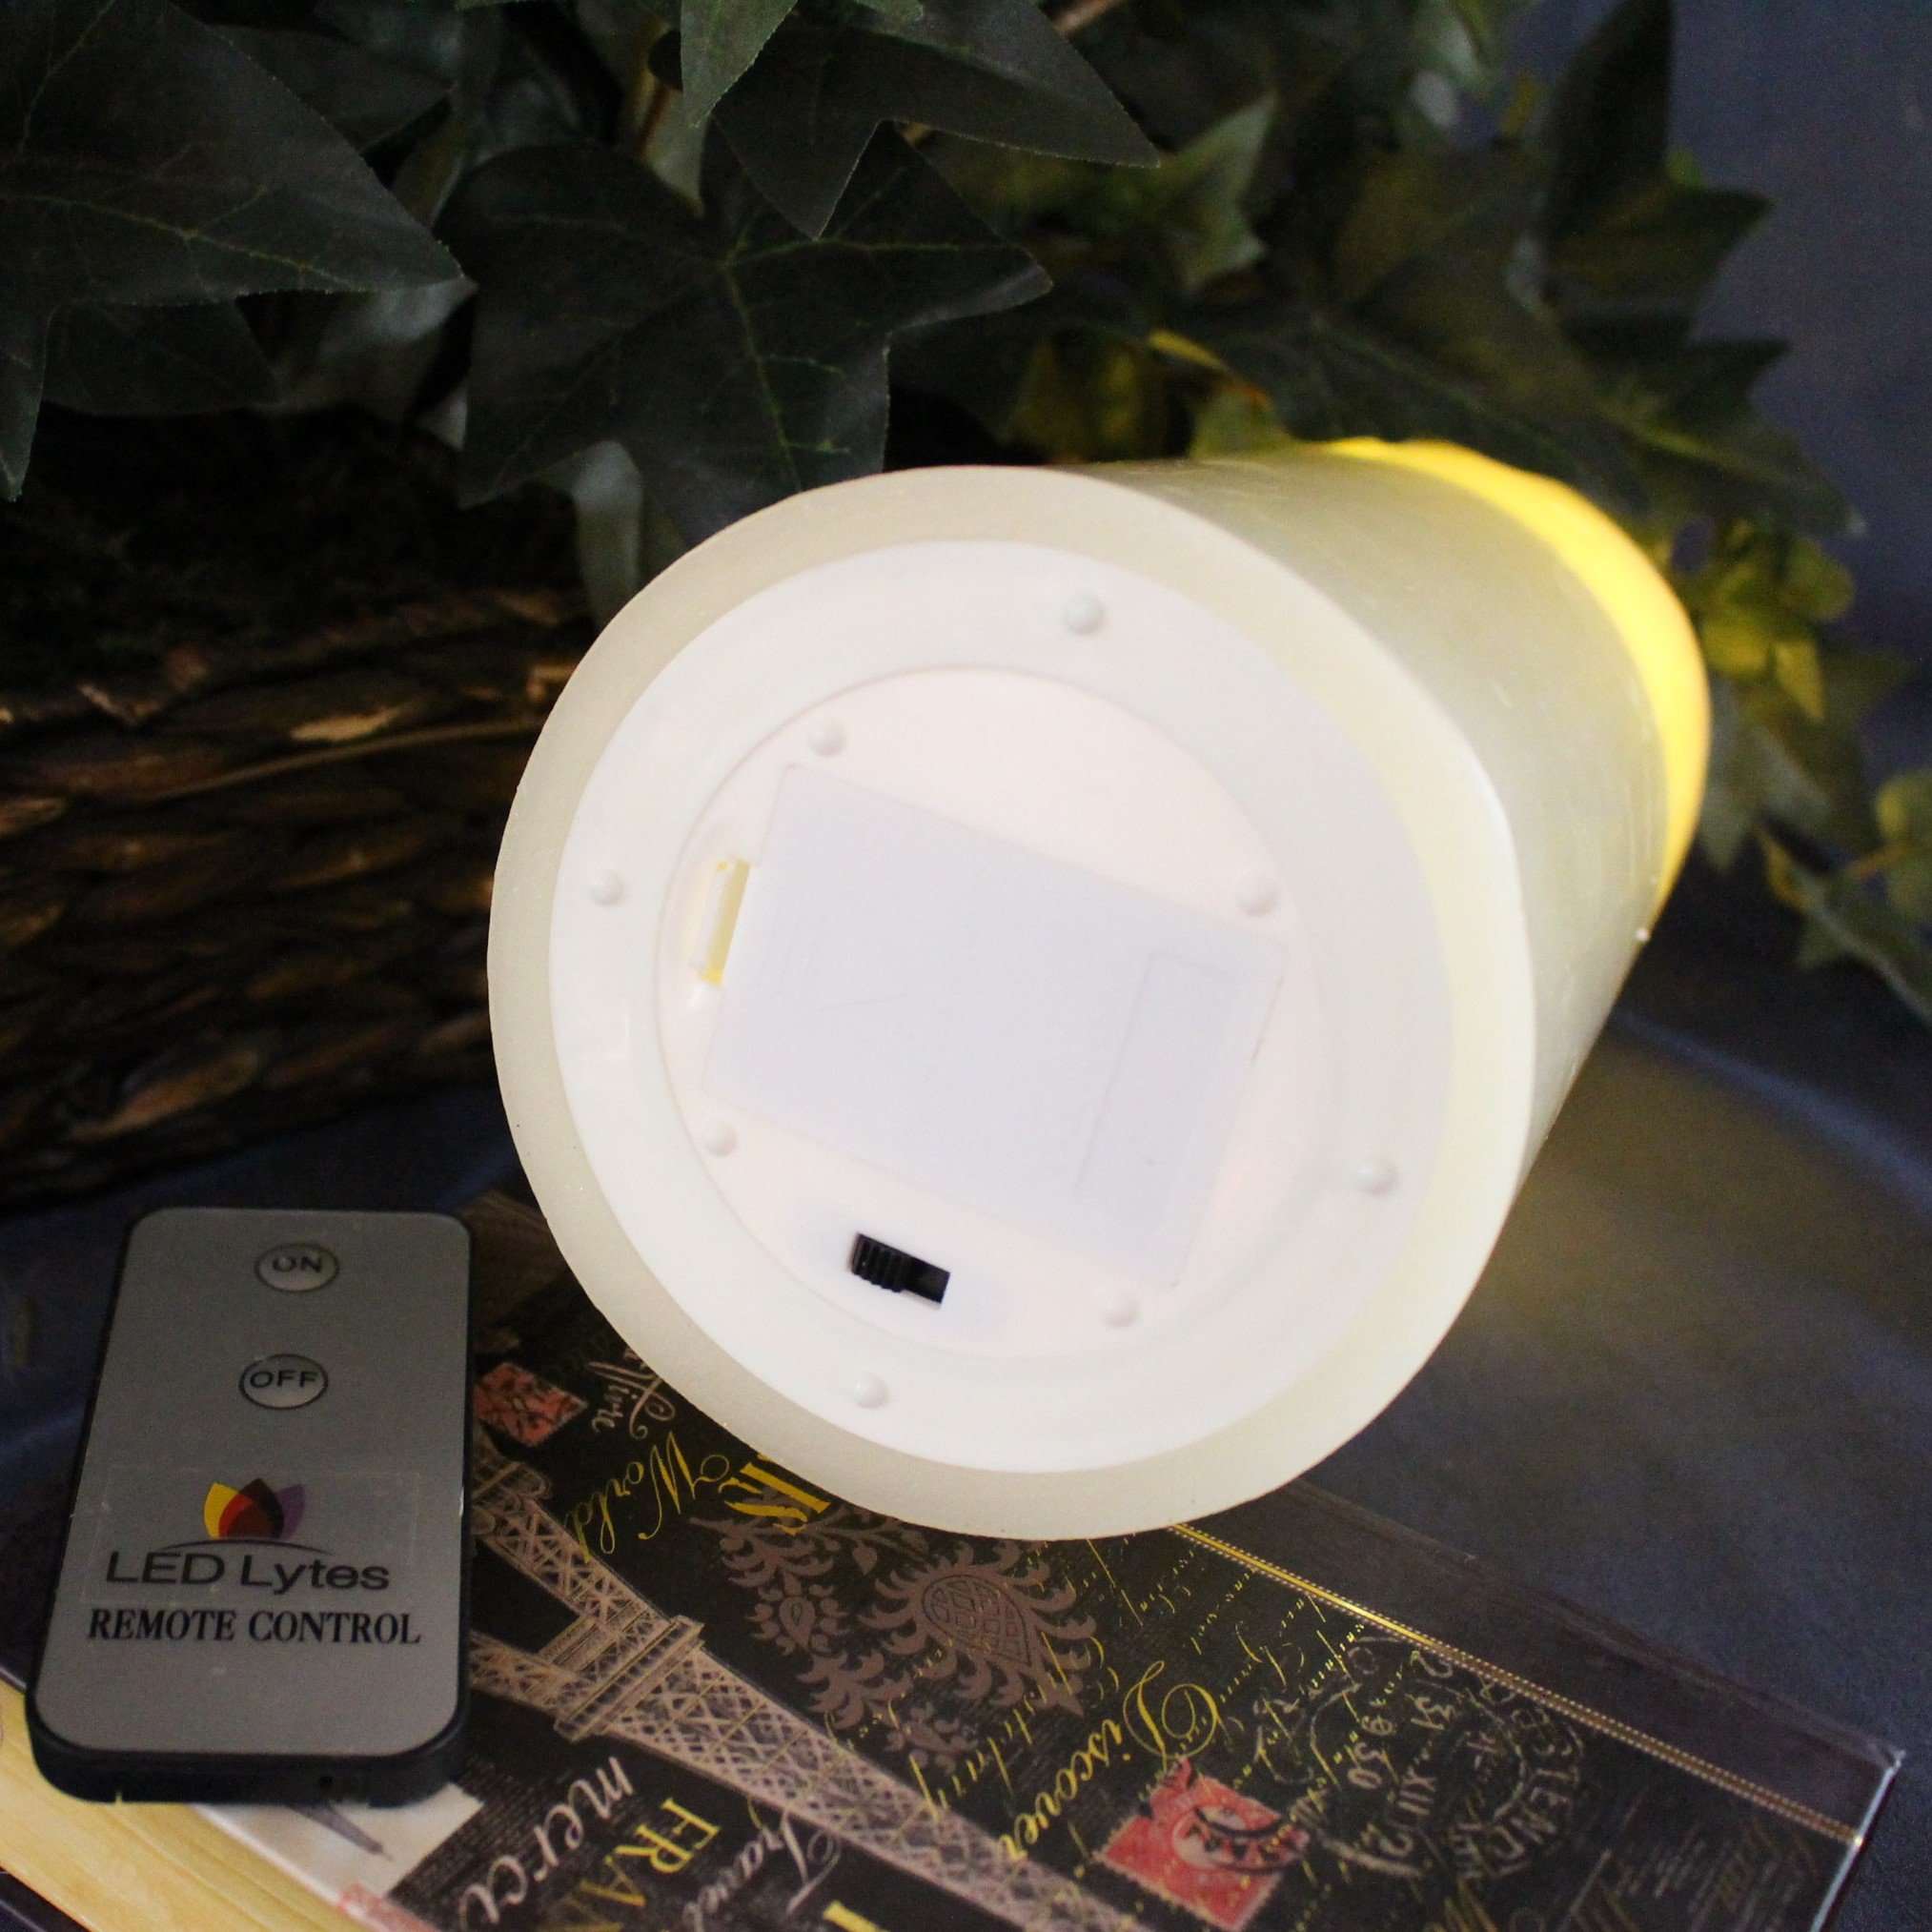 LED Lytes Flameless Candle Flickering - ONE Amber Yellow Pillar Battery Operated with Remote for Parties Weddings and Decorations by LED Lytes (Image #5)